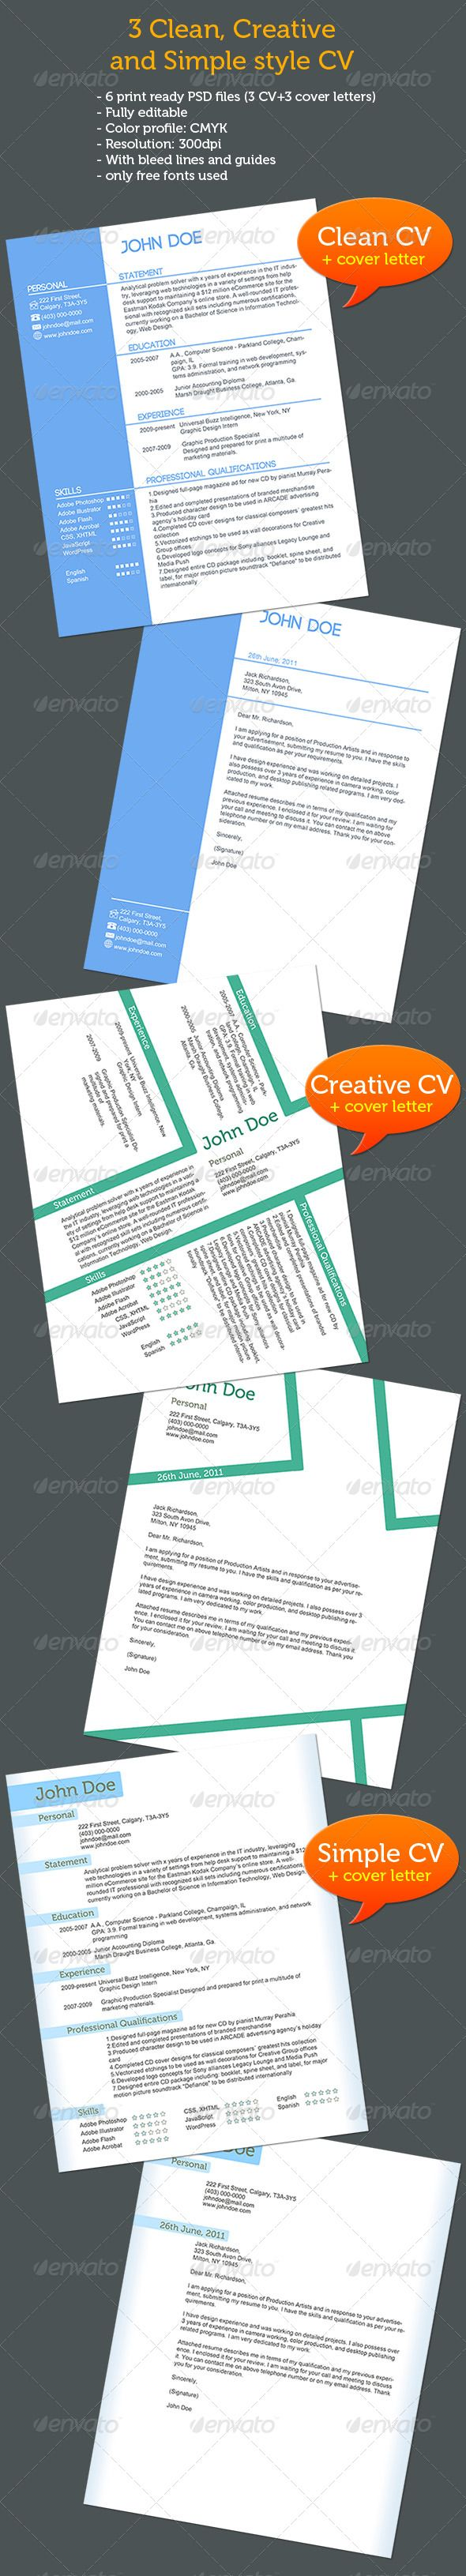 CvCover Letters  Different Styles  Cv Cover Letter Resume Cv